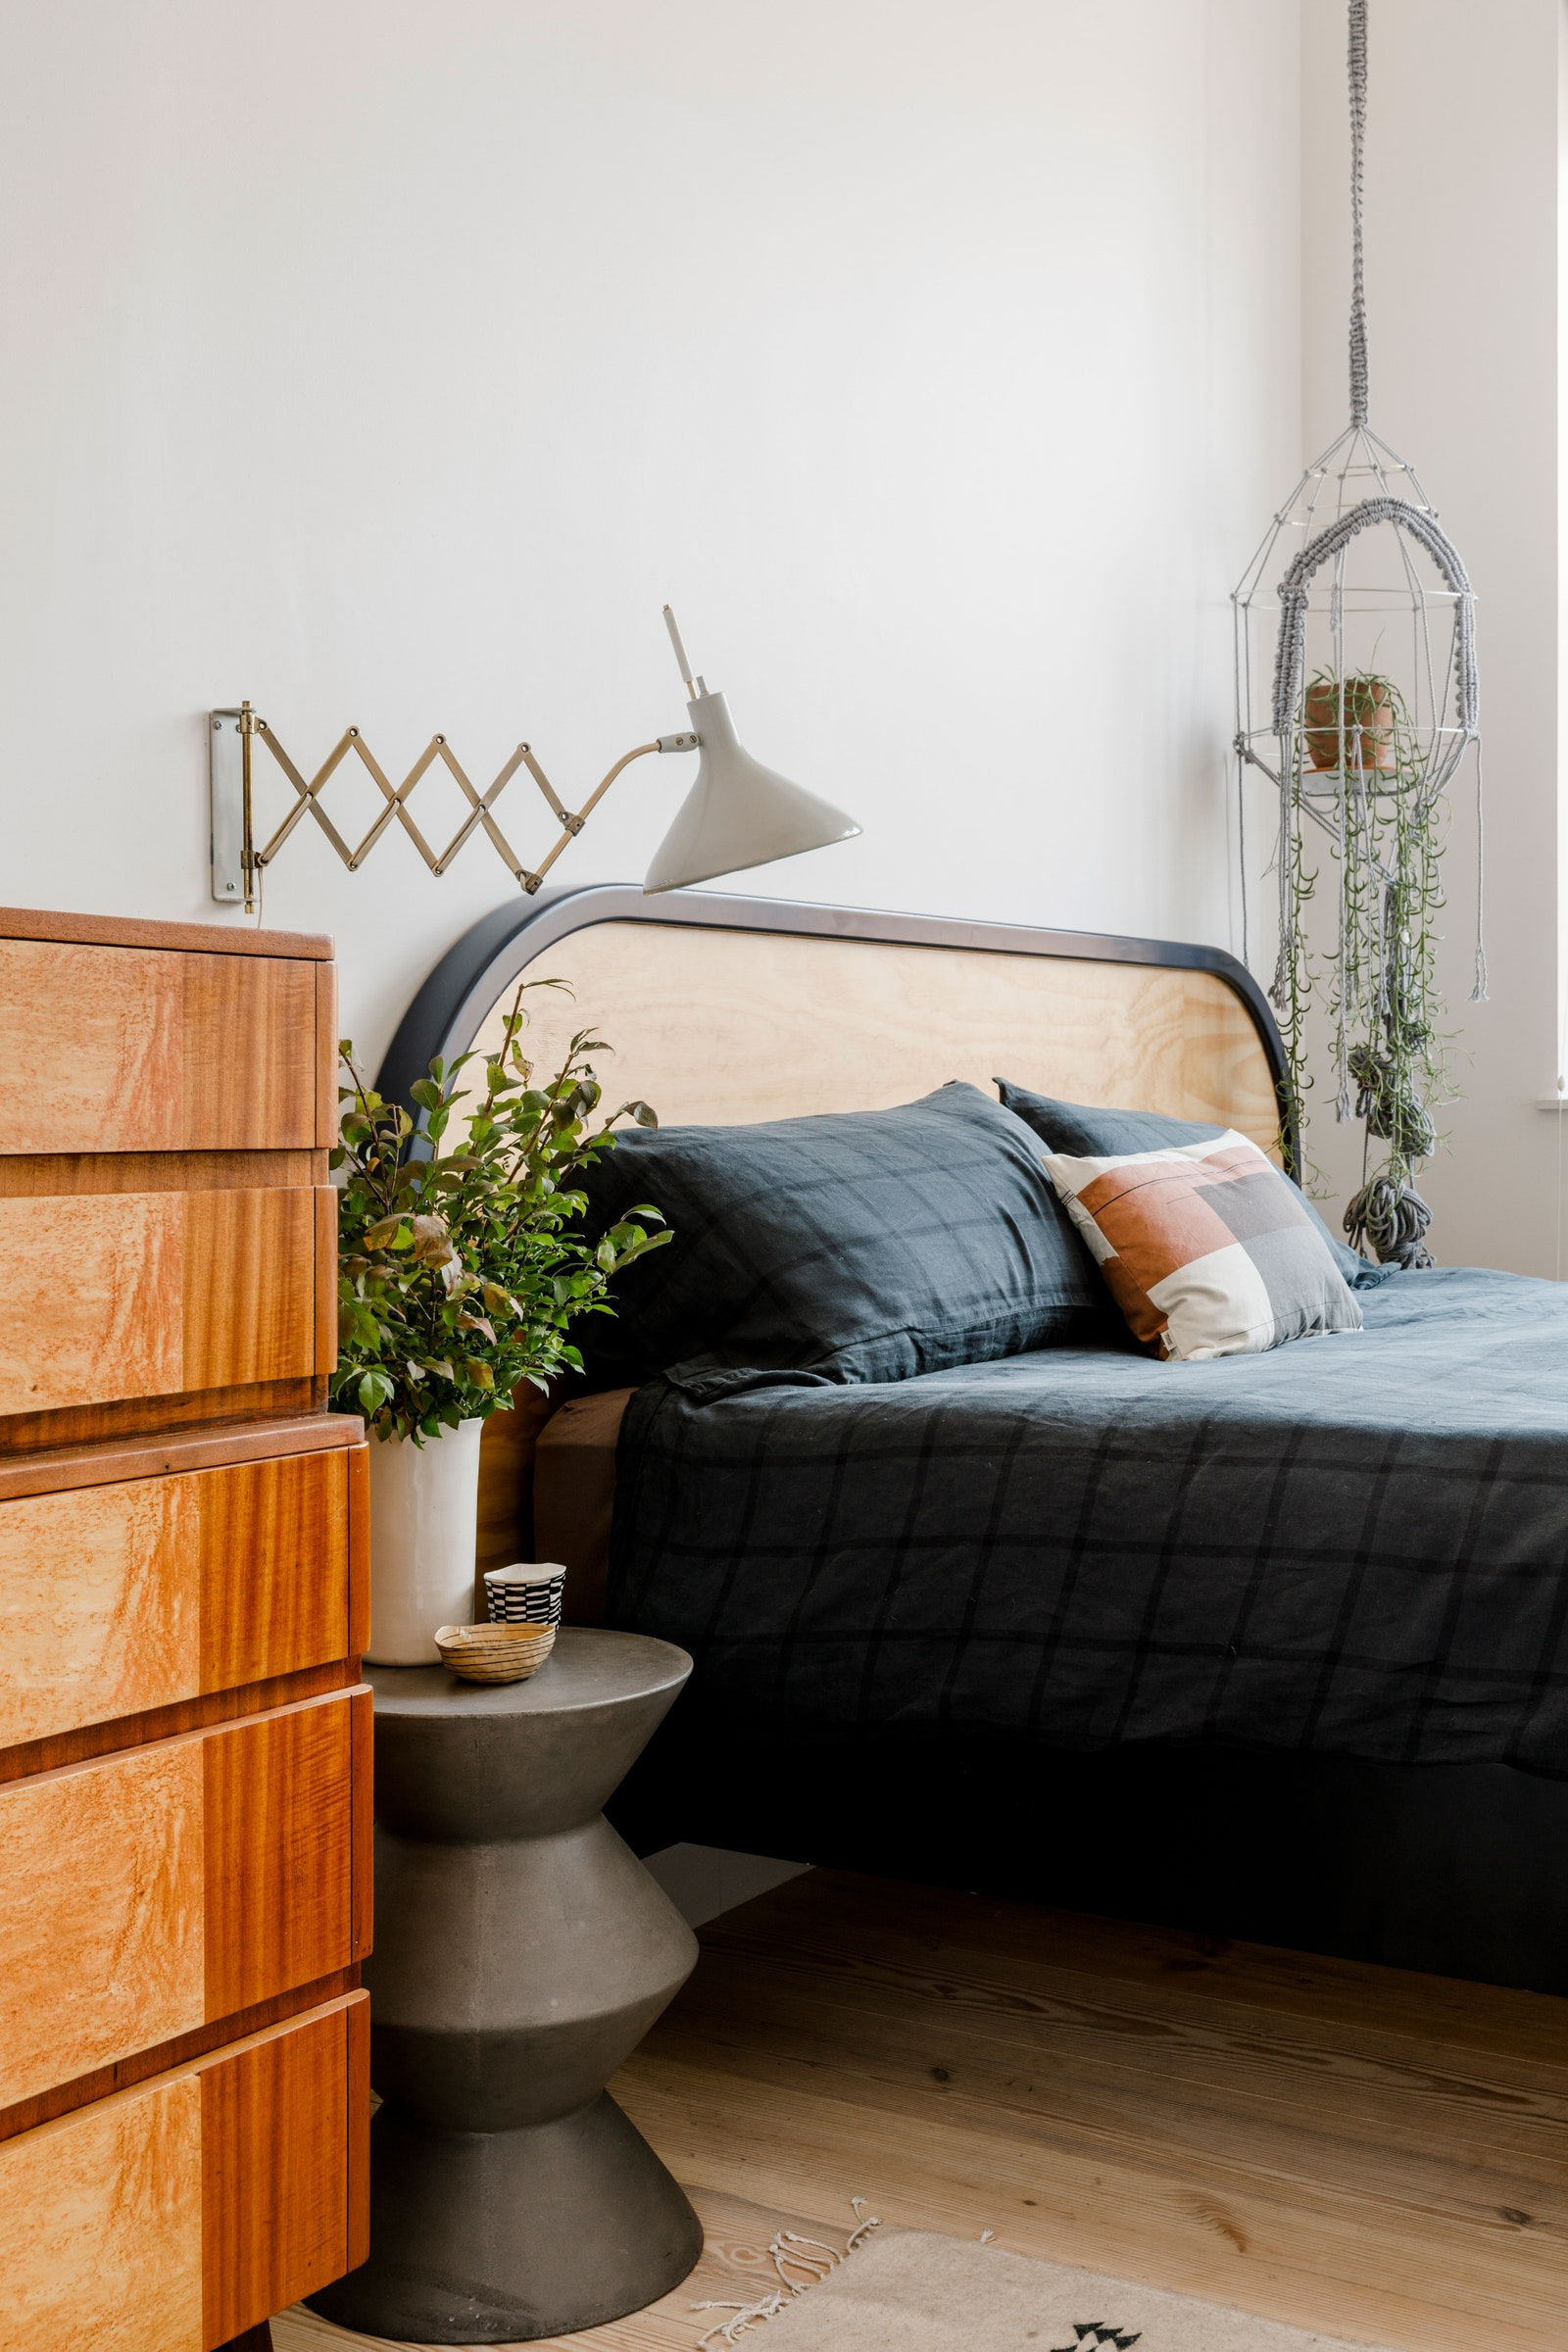 Mounted lamp for small bedroom | Source: architecturaldigest.com